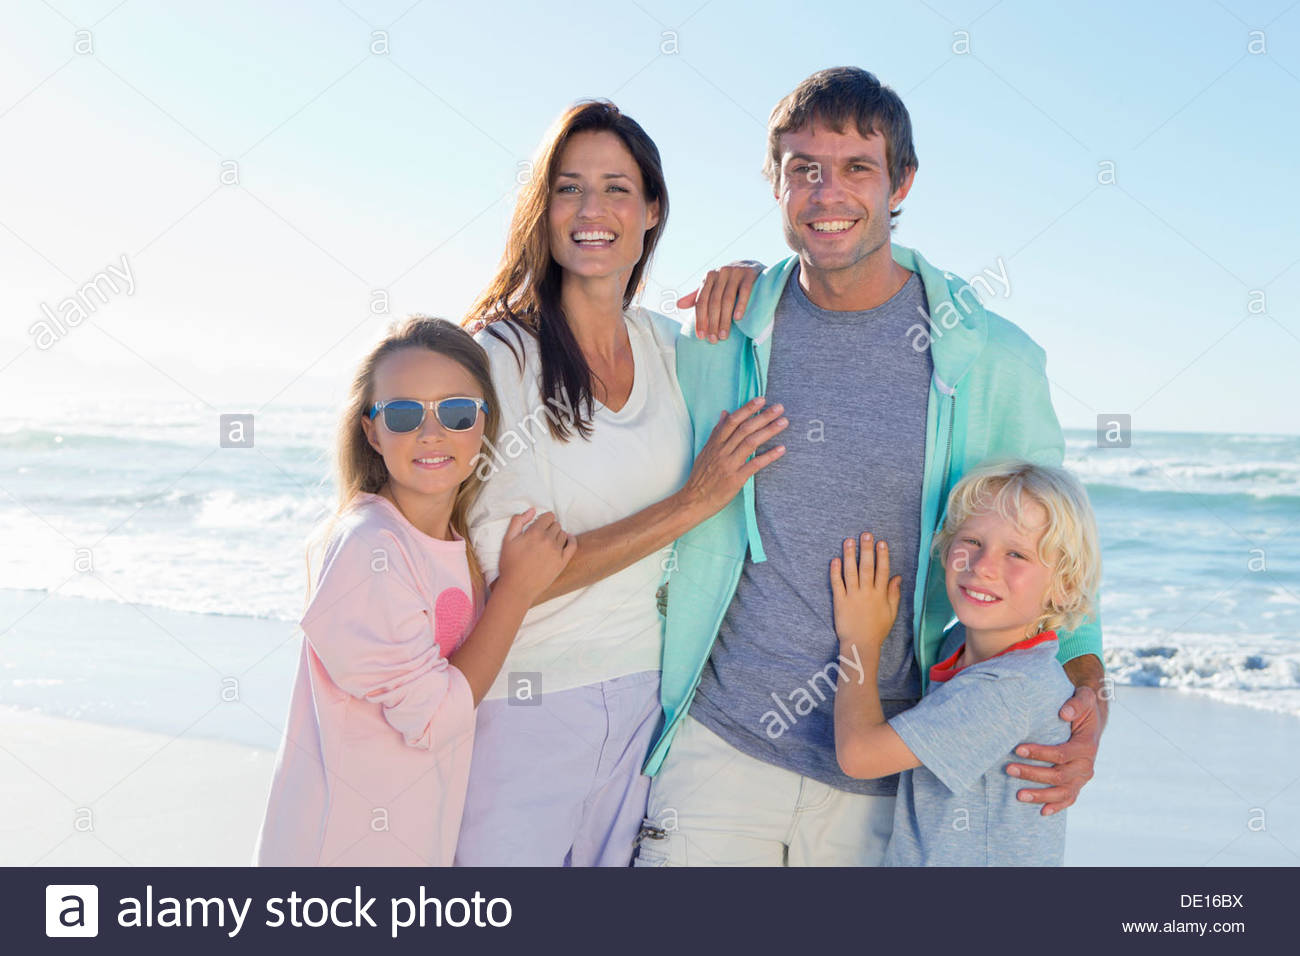 Portrait of happy family on sunny beach - Stock Image